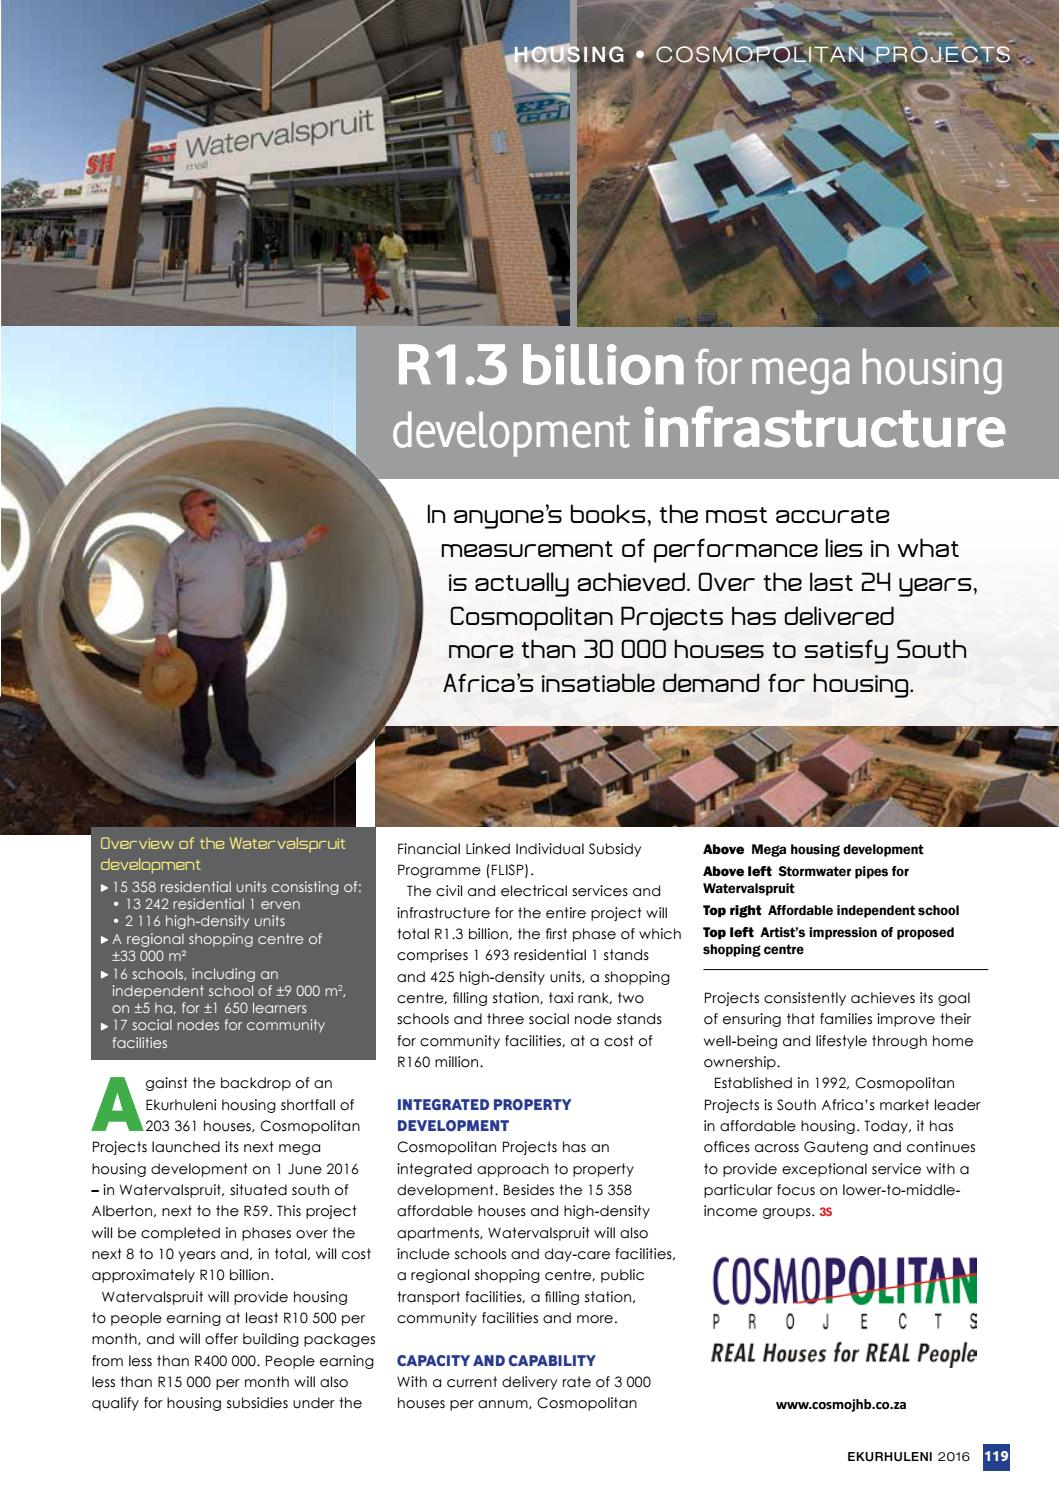 3S Special Projects - Ekurhuleni: Transforming the City by